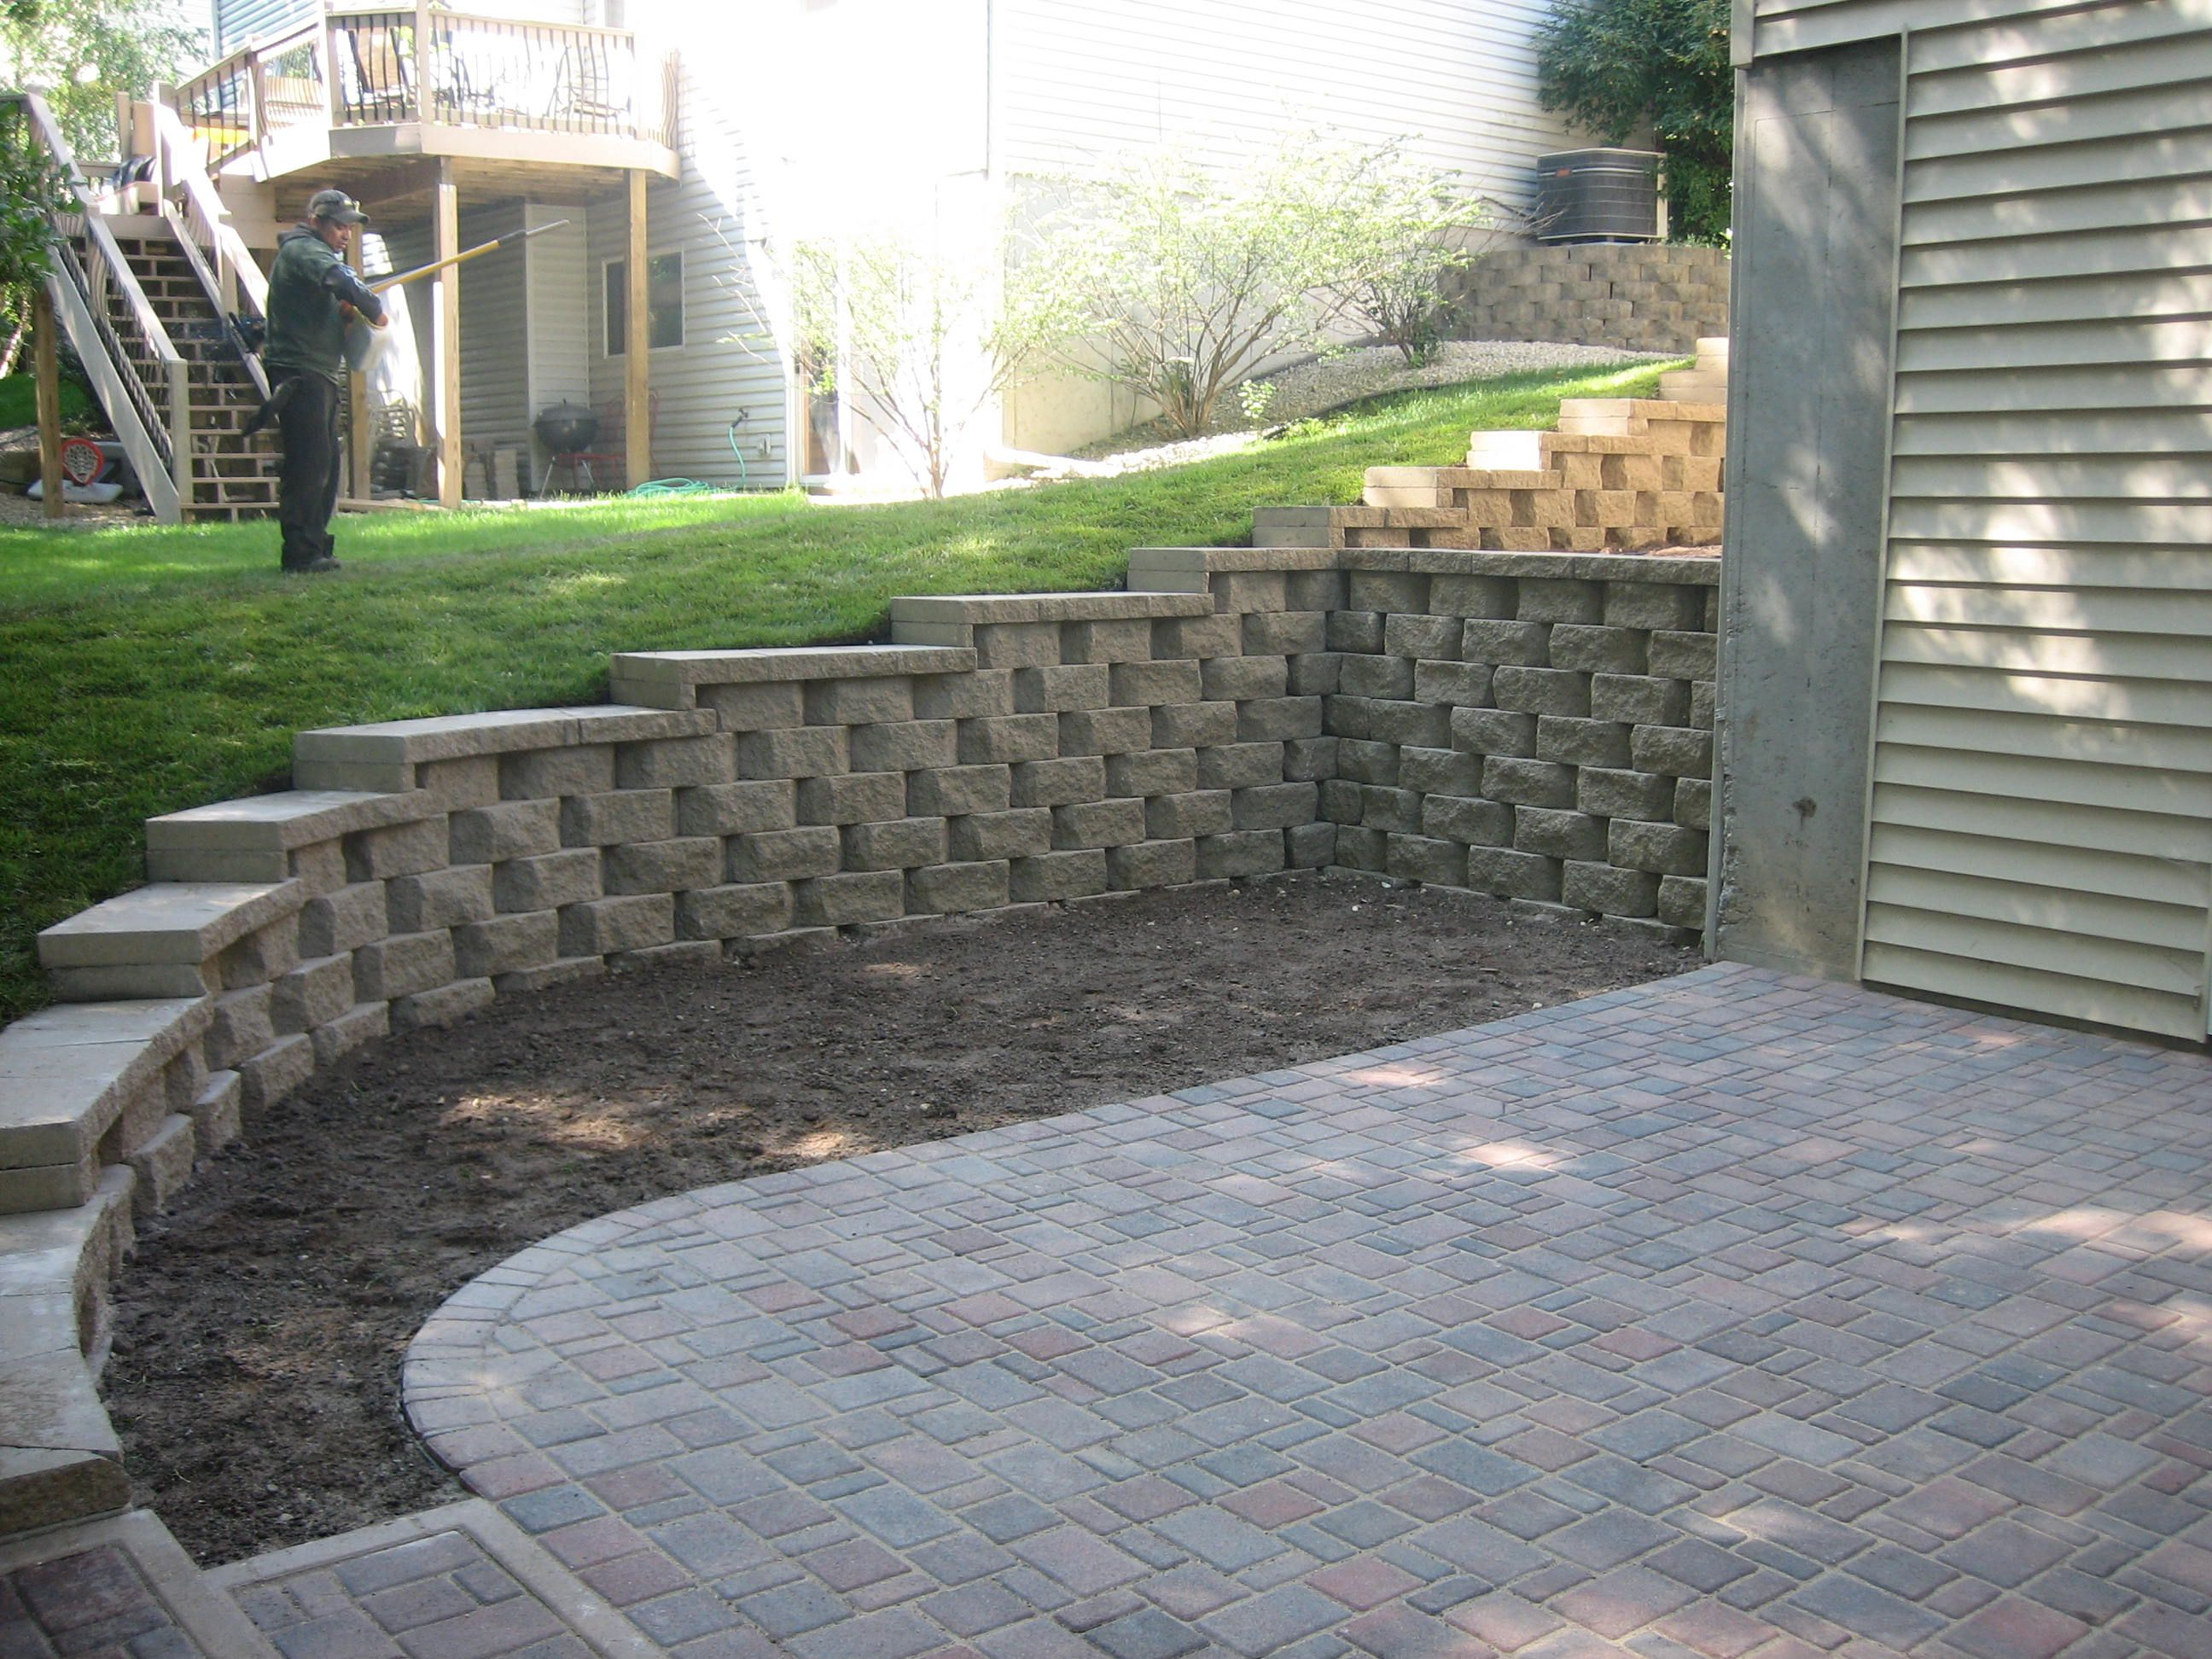 Retaining Wall With Caps And A Paver Patio Installed In Rosemount Pahl S Market Apple Valley Mn Backyard Retaining Walls Retaining Wall Patio Sloped Backyard